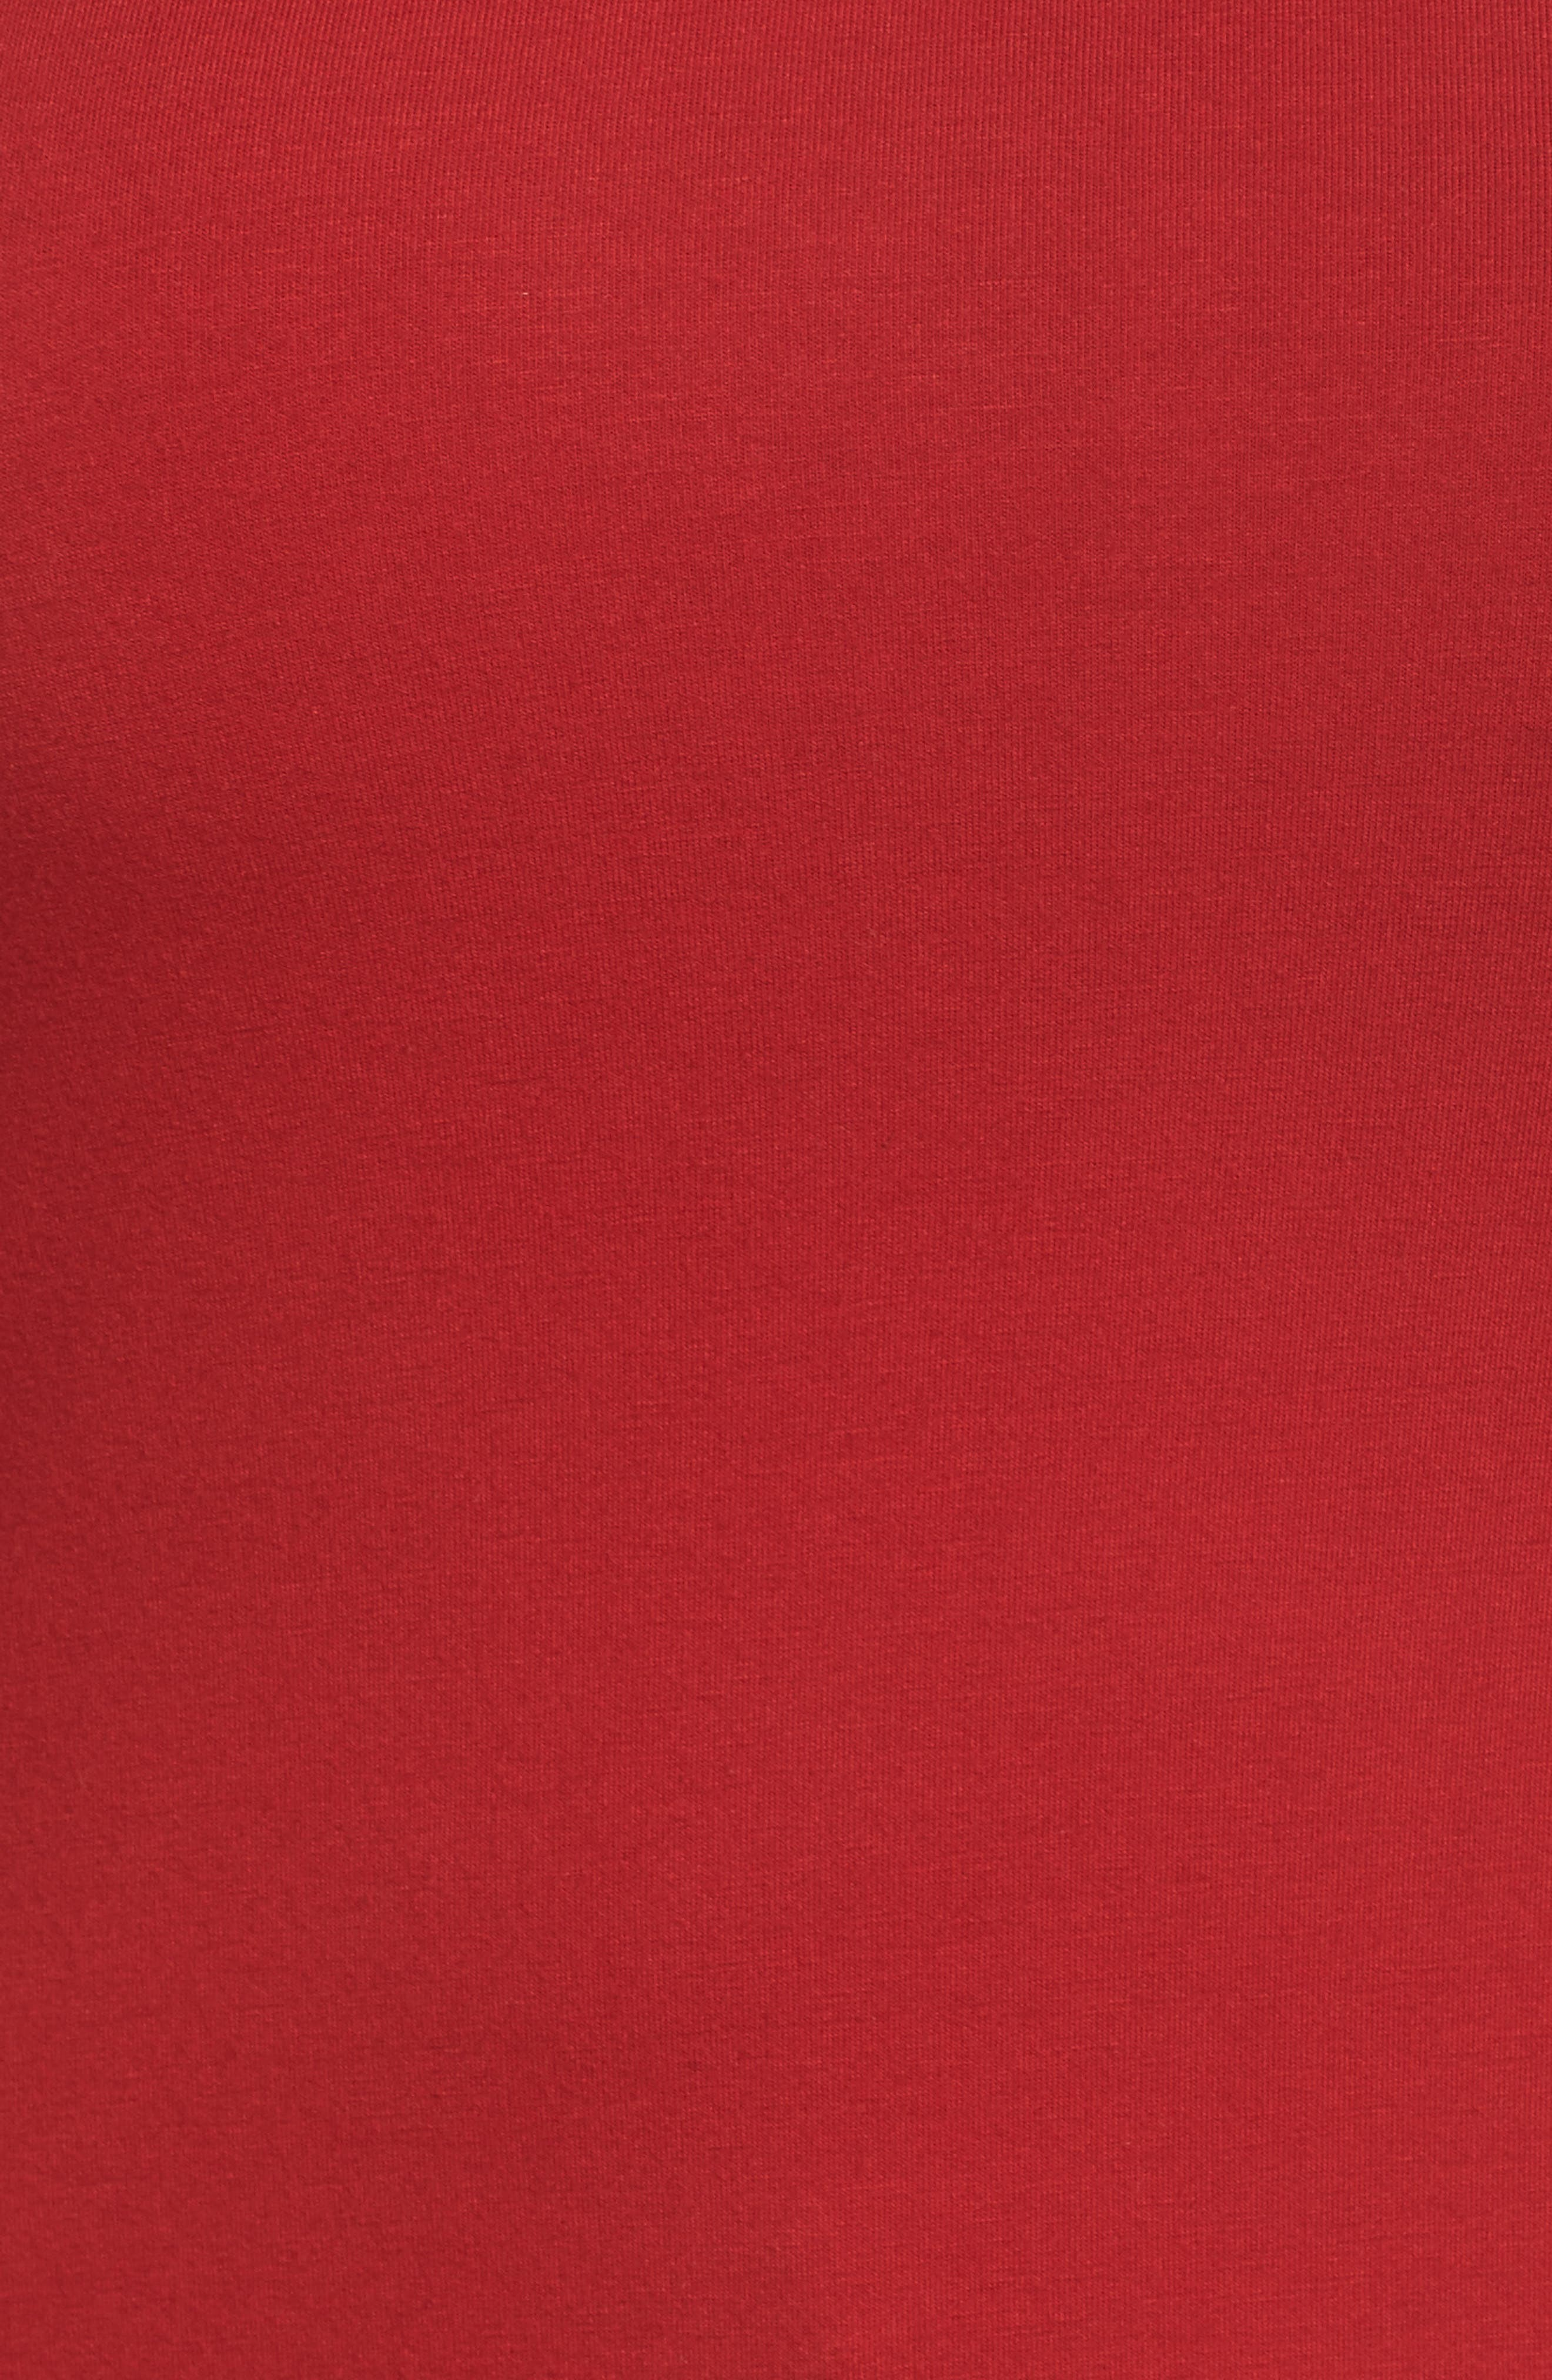 Wide V-Neck Tee,                             Alternate thumbnail 6, color,                             Red Couture